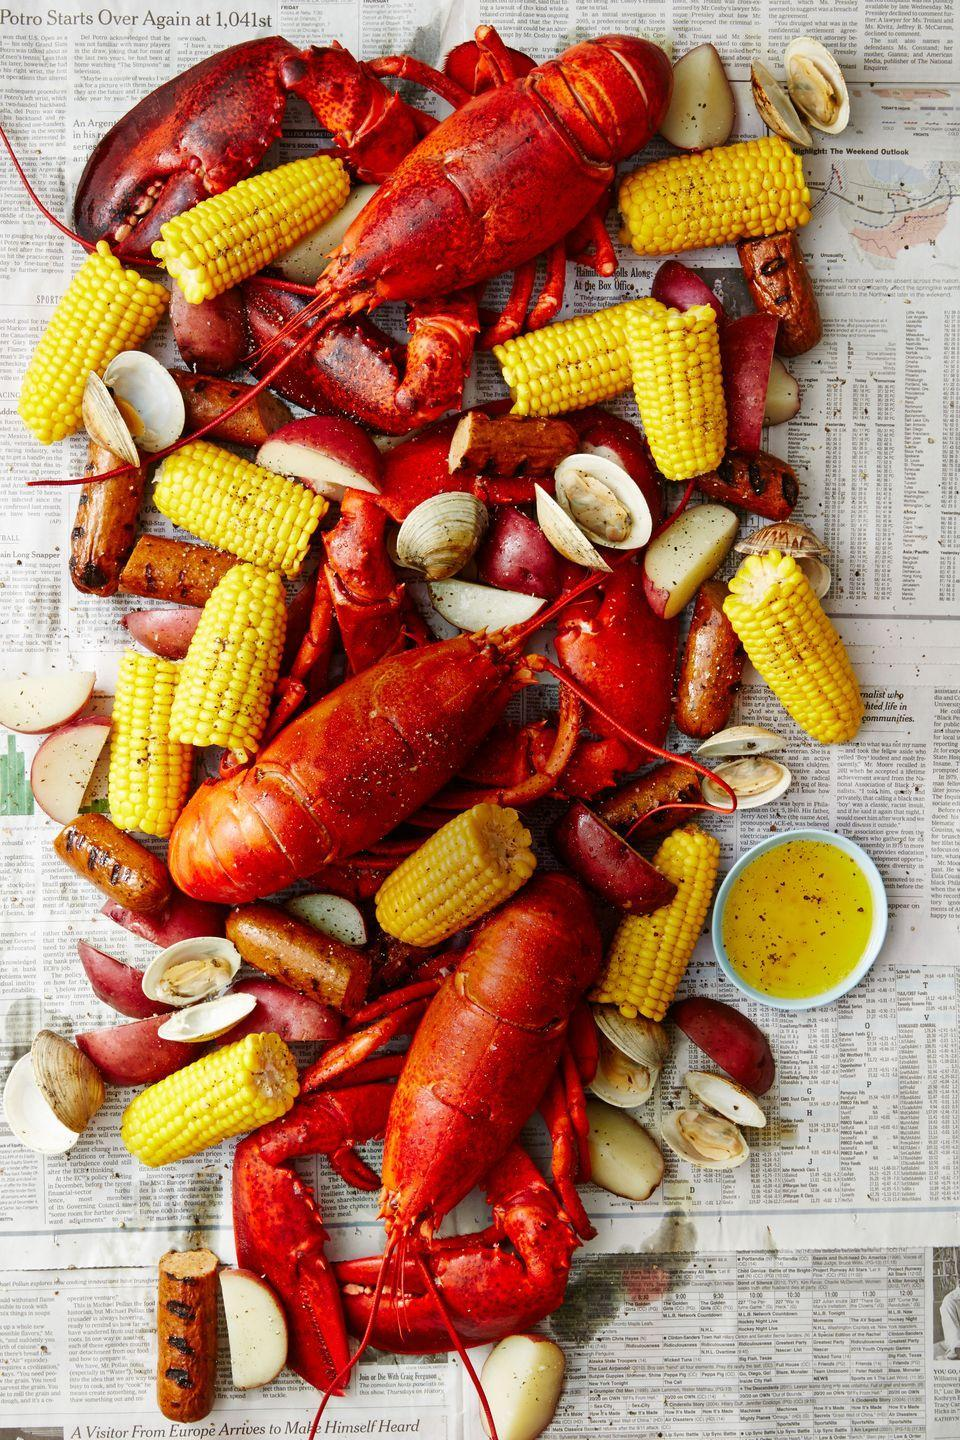 """<p>Is there a more appropriate occasion for lobster than Valentine's day? We think not.</p><p><em><a href=""""https://www.goodhousekeeping.com/food-recipes/a38835/new-england-lobster-bake-recipe/"""" rel=""""nofollow noopener"""" target=""""_blank"""" data-ylk=""""slk:Get the recipe for New England Lobster &quot;Bake&quot;»"""" class=""""link rapid-noclick-resp"""">Get the recipe for New England Lobster """"Bake""""»</a></em></p>"""